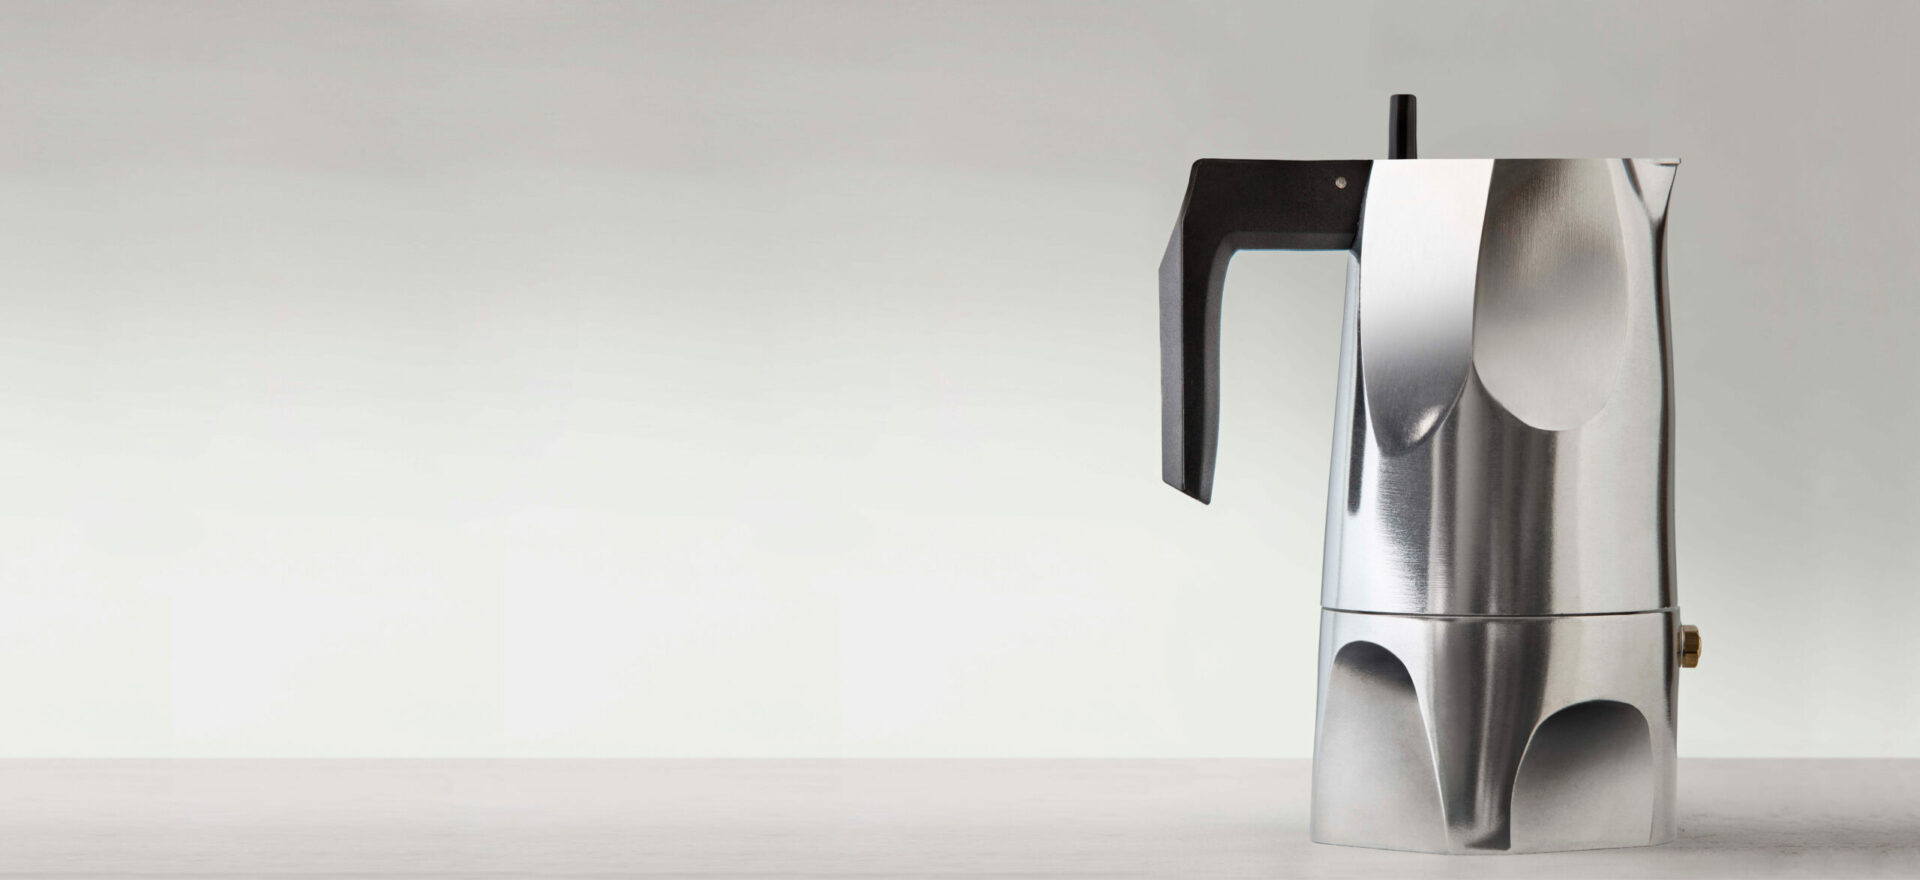 Right side photo of Ossidiana Expresso Coffee maker for Alessi. The model presented in the picture is in aluminium casting with handle in thermoplastic black resin, showing the details of its form inspired in the stone arrowheads handmade by natives.